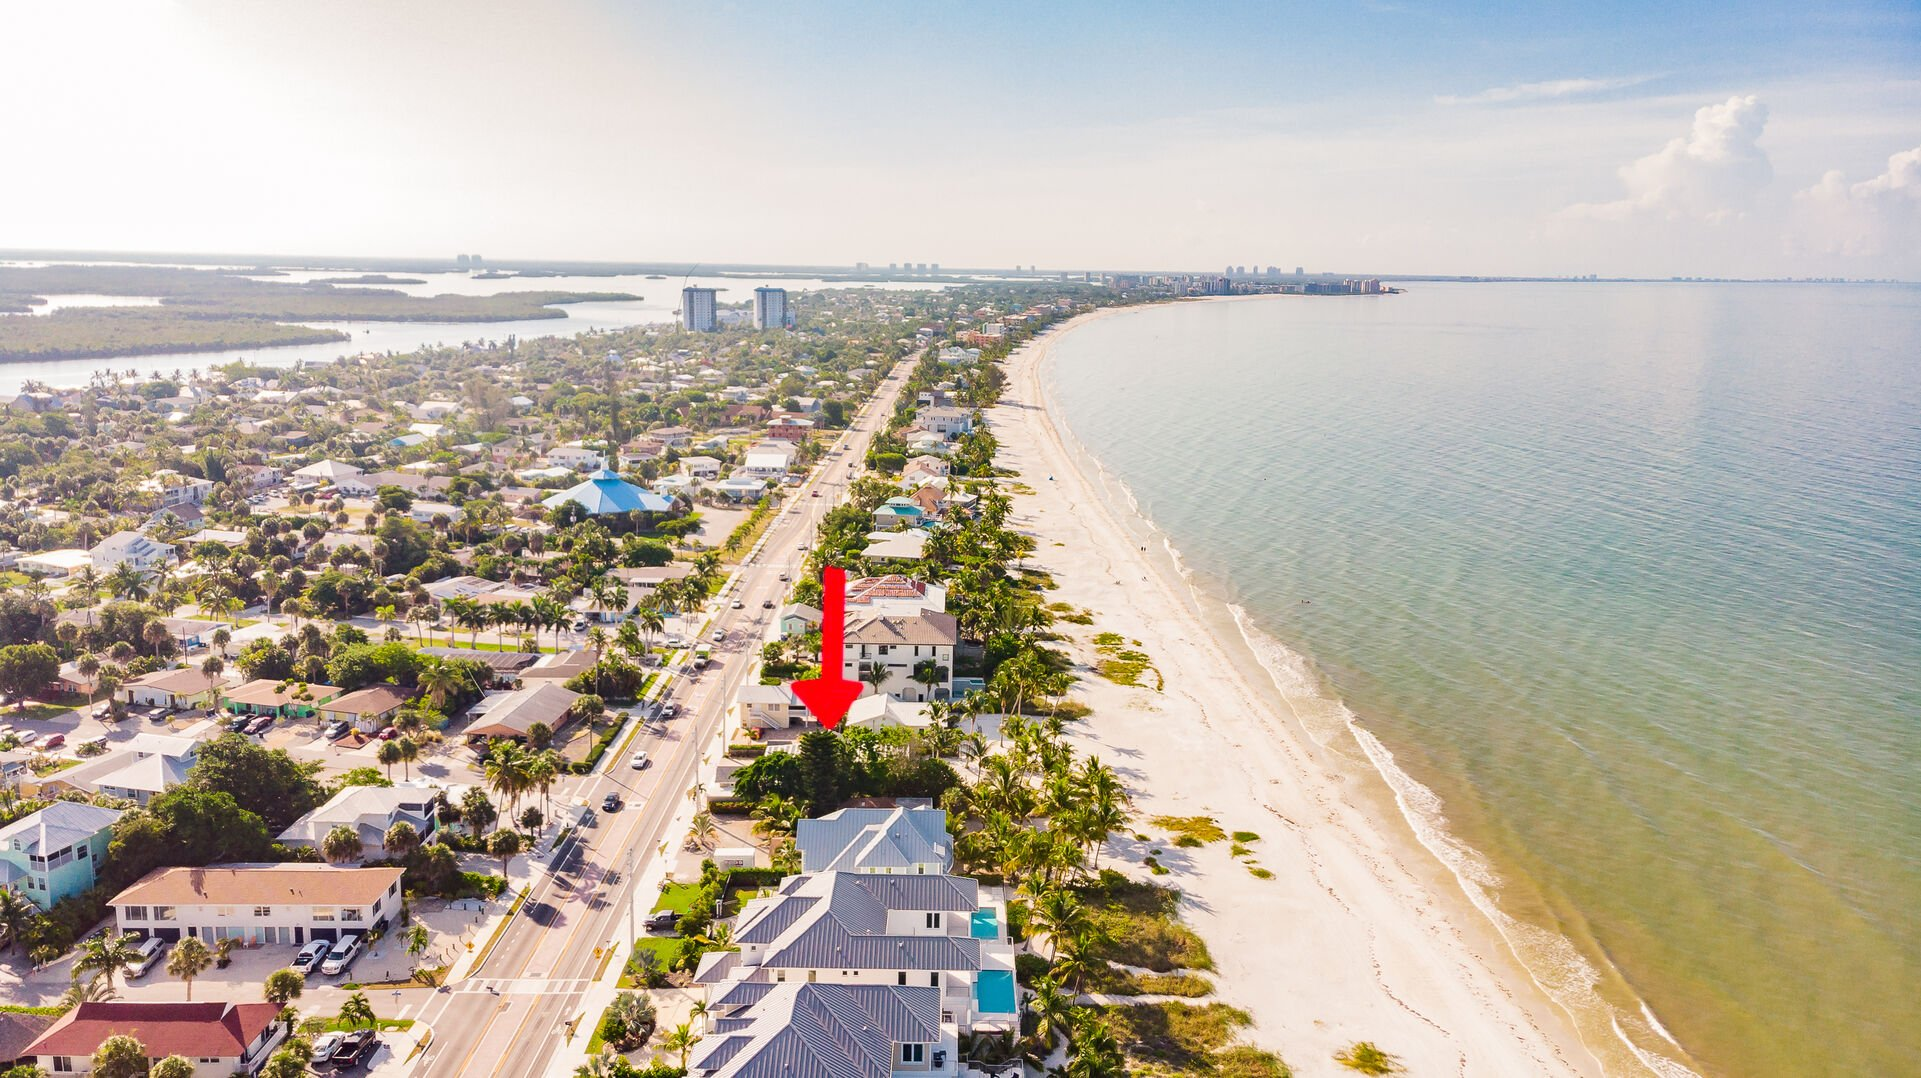 Aerial View of Surrounding Area Private Beach House Rental in Florida